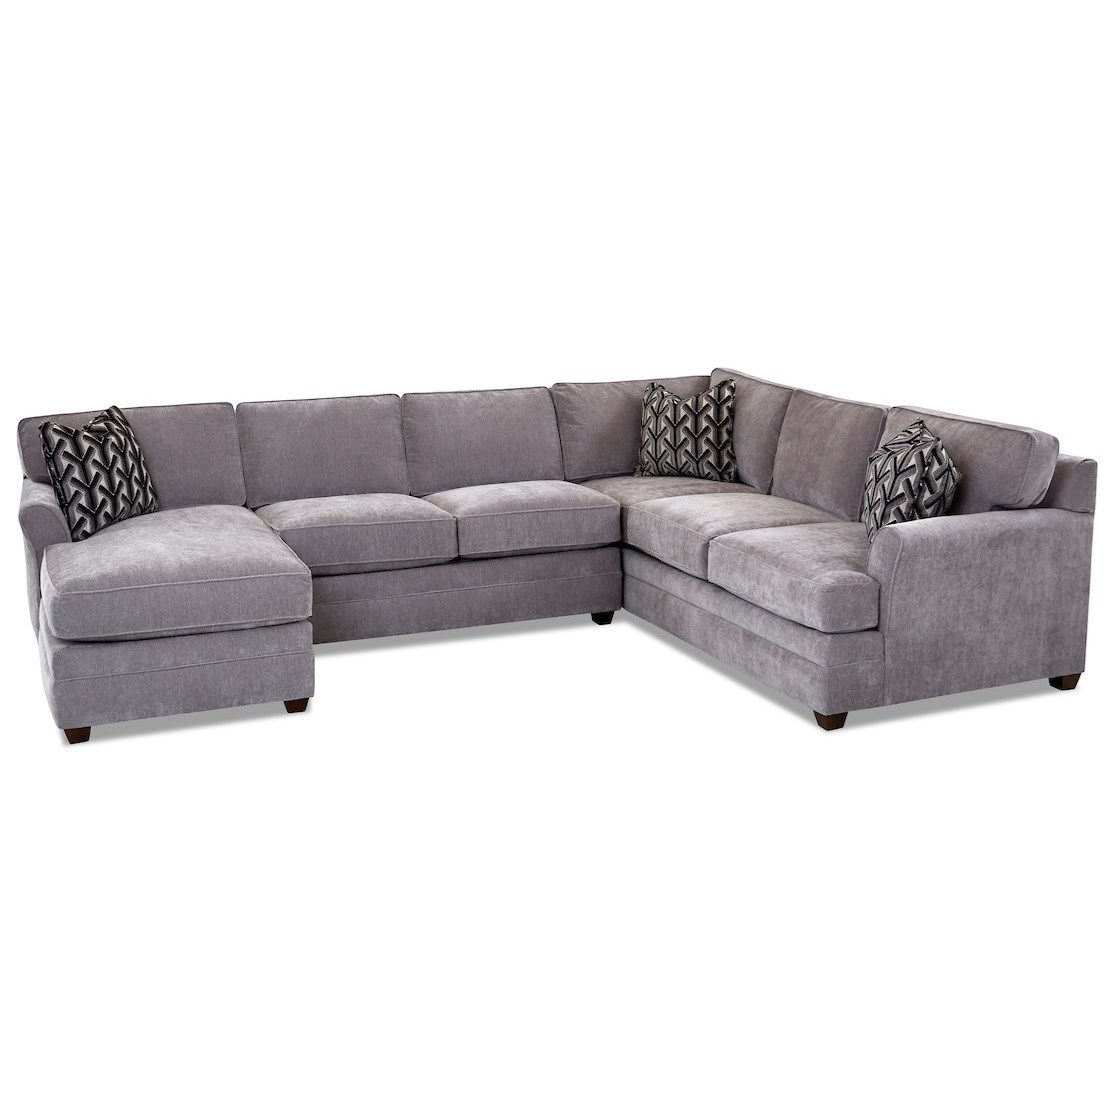 Living Your Way 3-Piece Sectional Sofa w/ LAF Chaise by Klaussner at Johnny Janosik